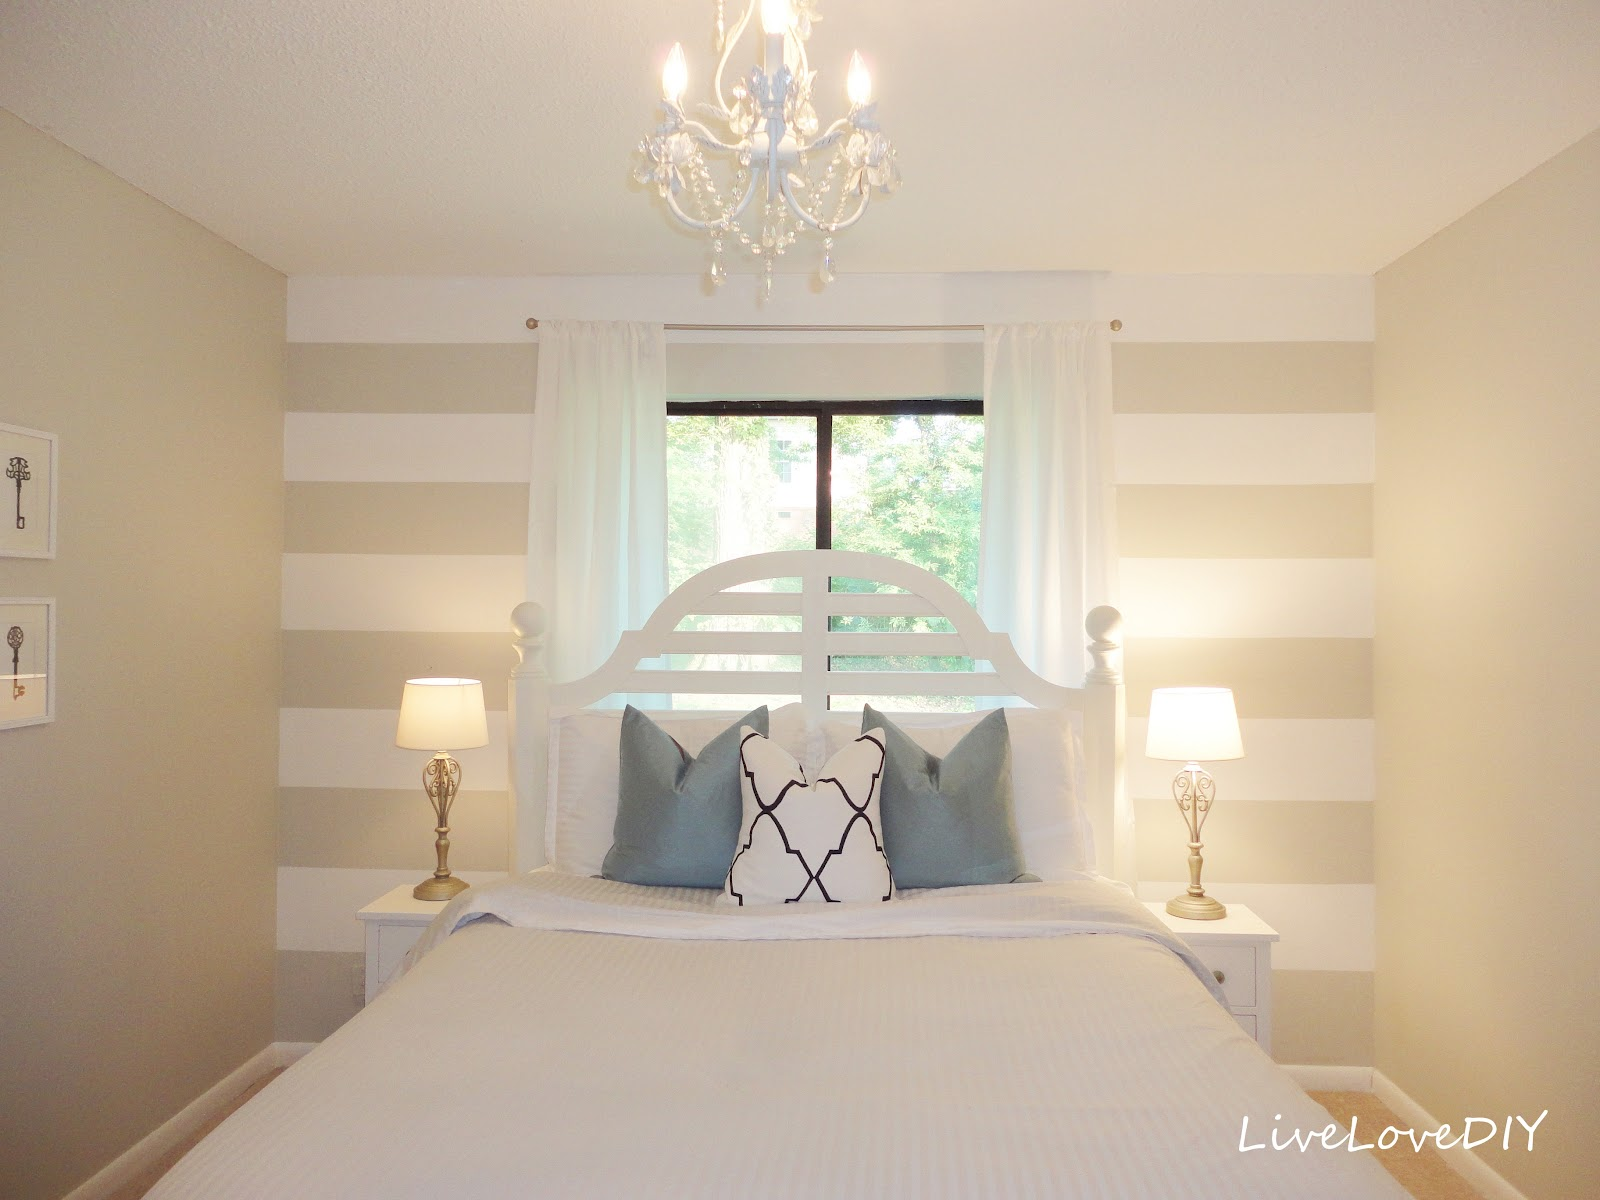 LiveLoveDIY: DIY Striped Wall Guest Bedroom Makeover